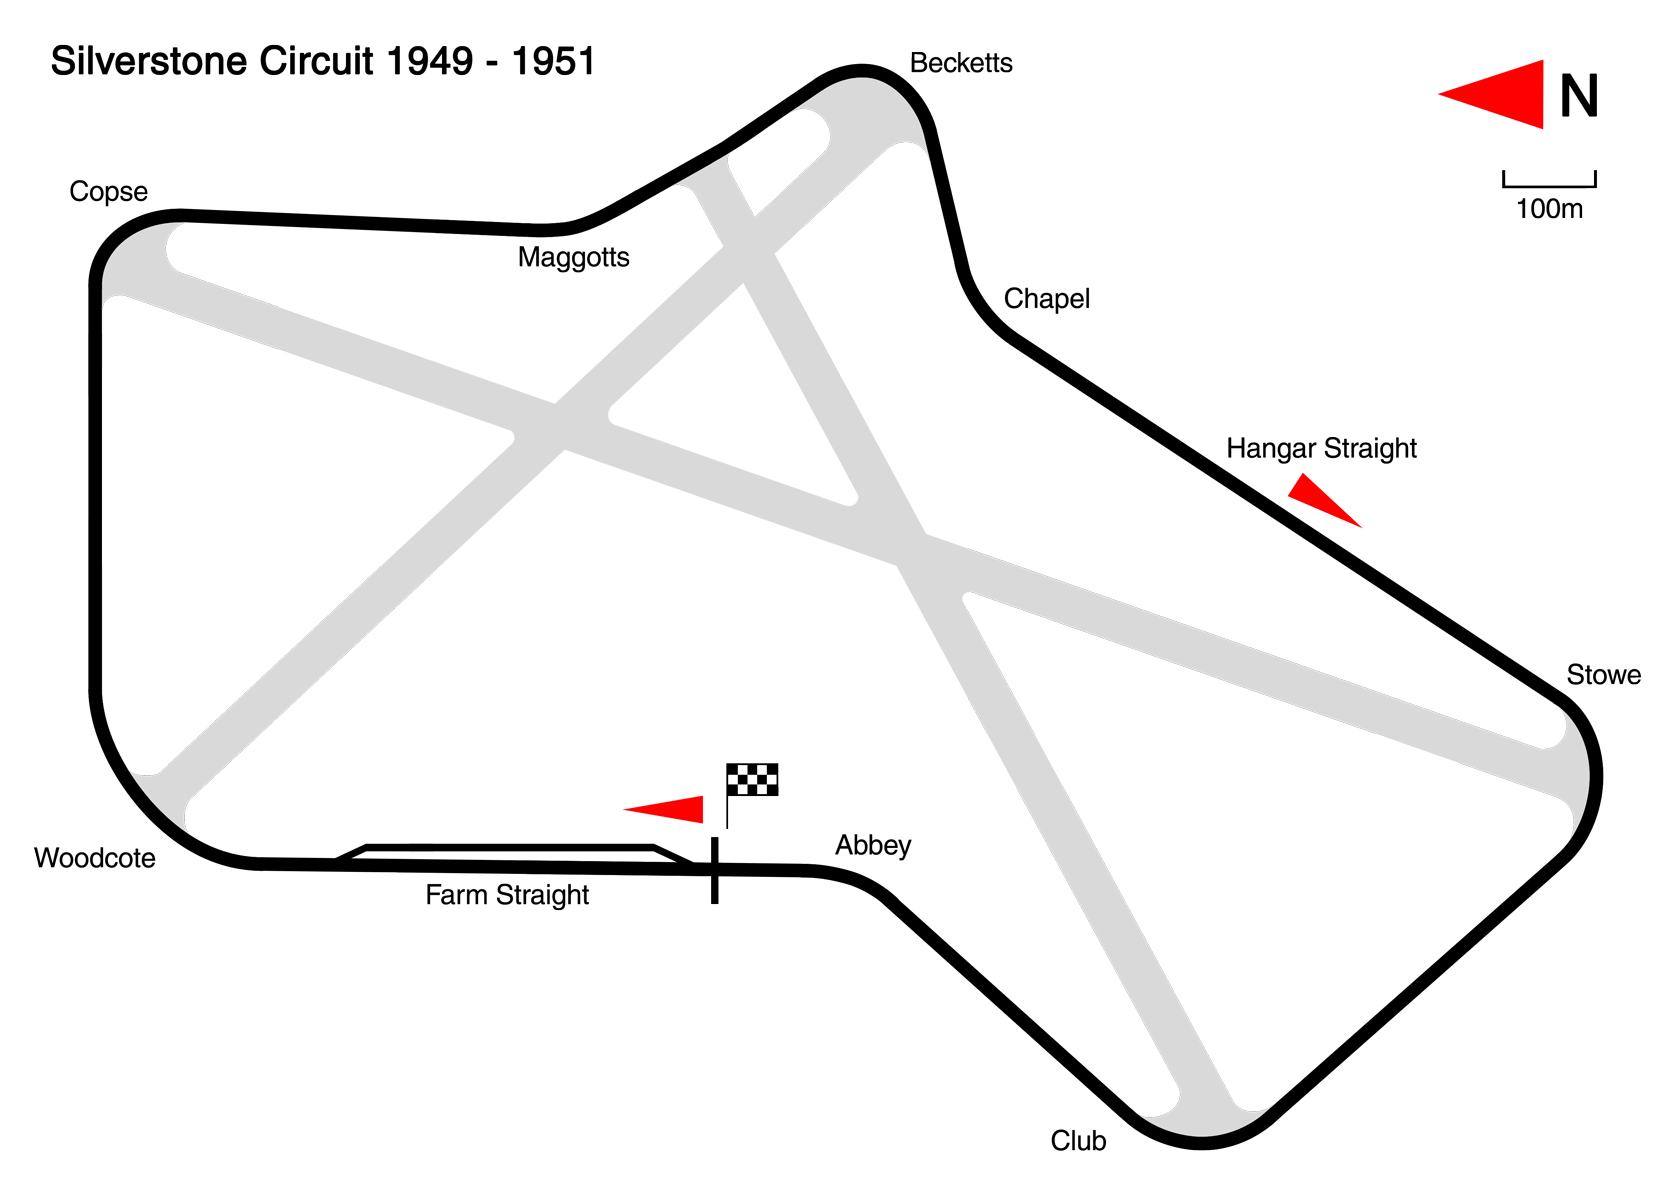 File:Silverstone Circuit 1949 to 1951.png - Wikimedia Commons